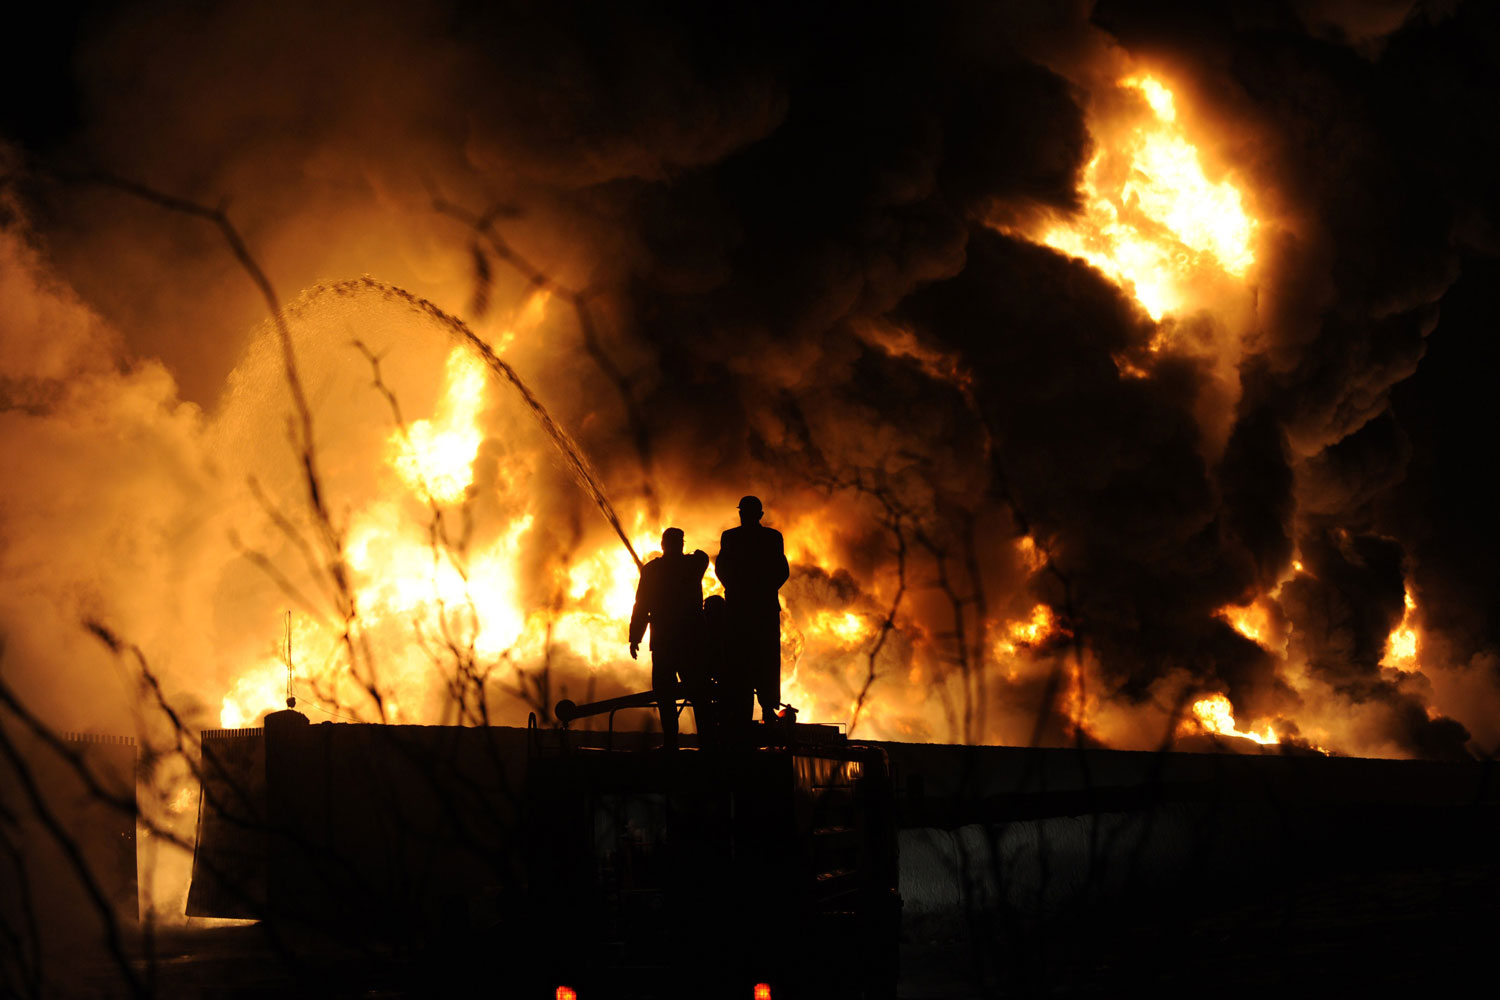 December 8, 2011. Pakistani firefighters extinguish burning NATO supply oil tankers and goods trucks at a terminal following an attack by gunmen in Quetta. Up to 20 trucks were ablaze after a rocket attack on a NATO trucking terminal in Quetta, the capital of the southwestern Pakistani province of Baluchistan, officials said.